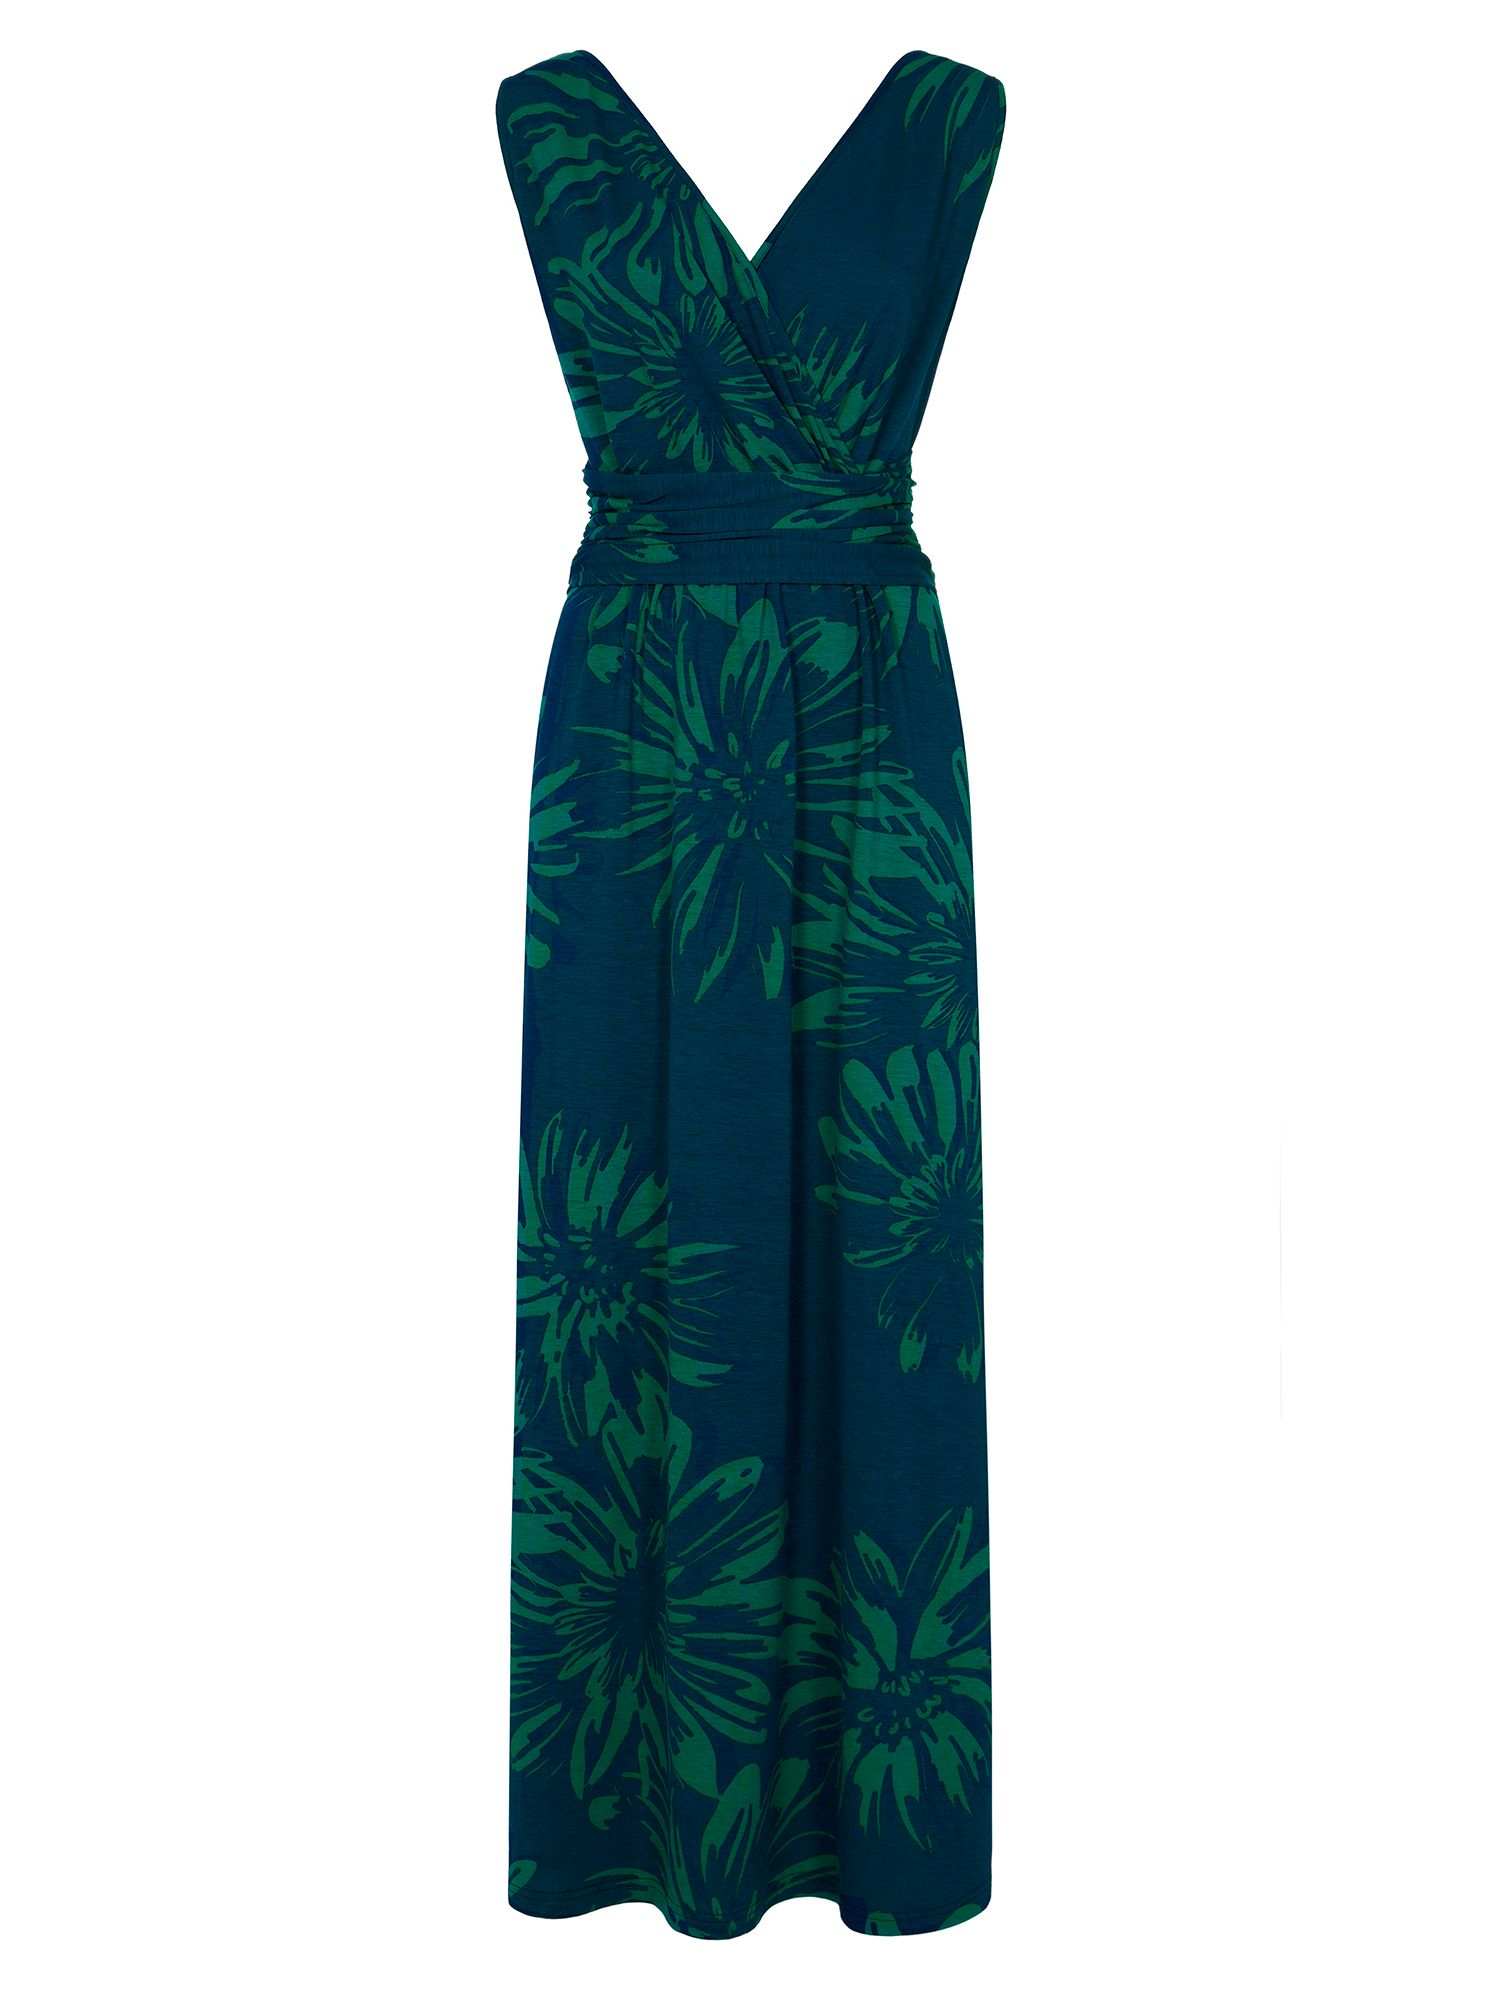 HotSquash V Neck Maxi Dress in CoolFresh, Teal